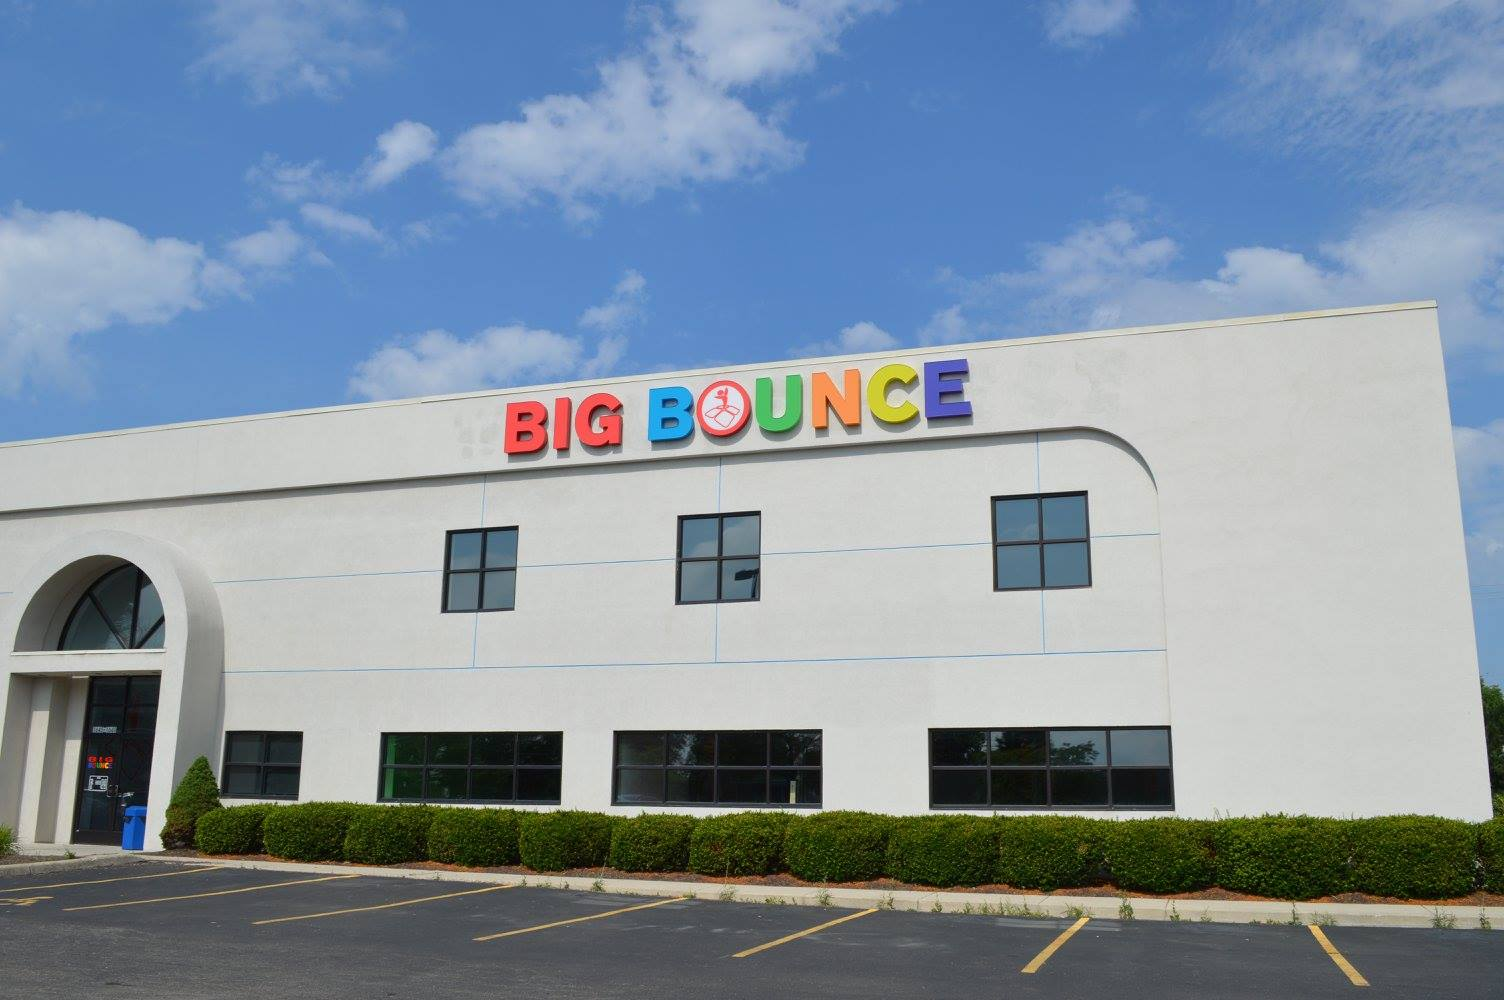 big-bounce-building.jpg